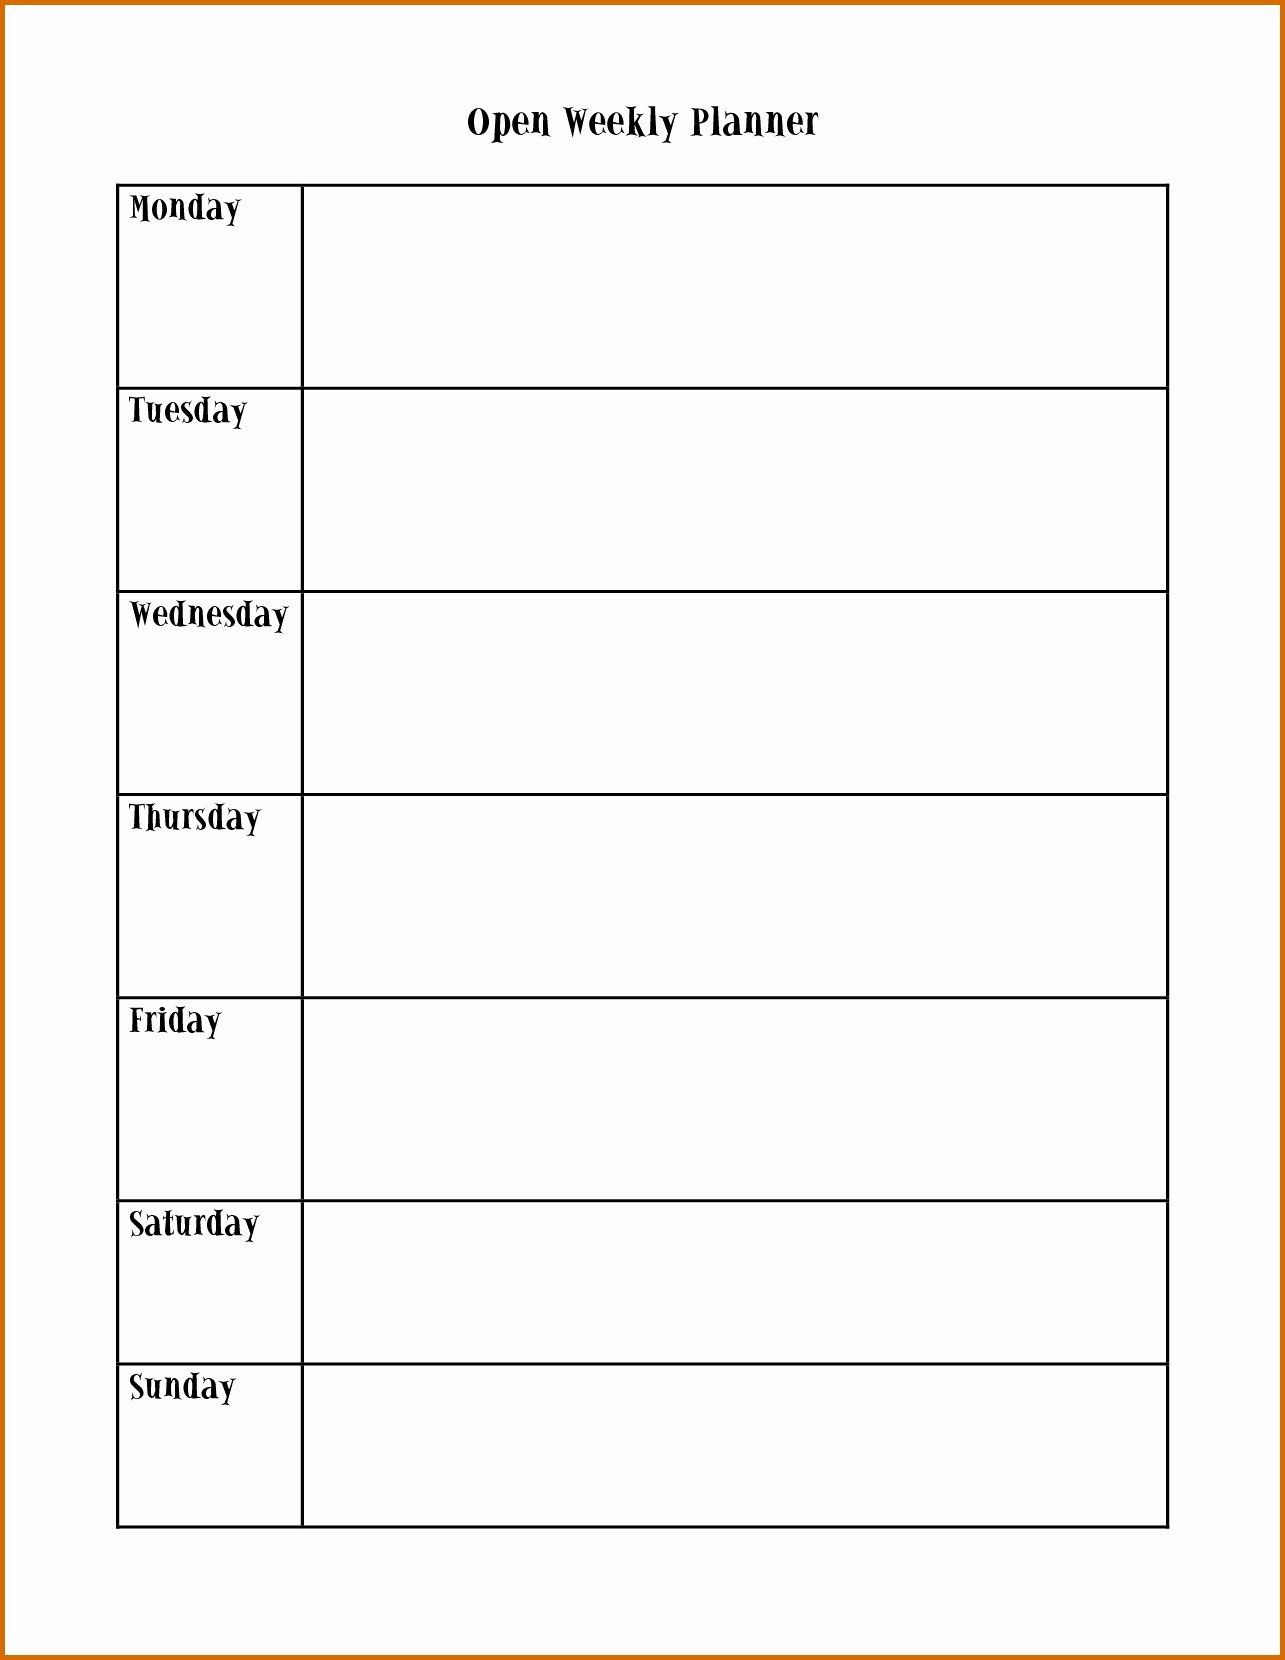 Weekly Calendar Monday Through Friday In 2020 | Monthly